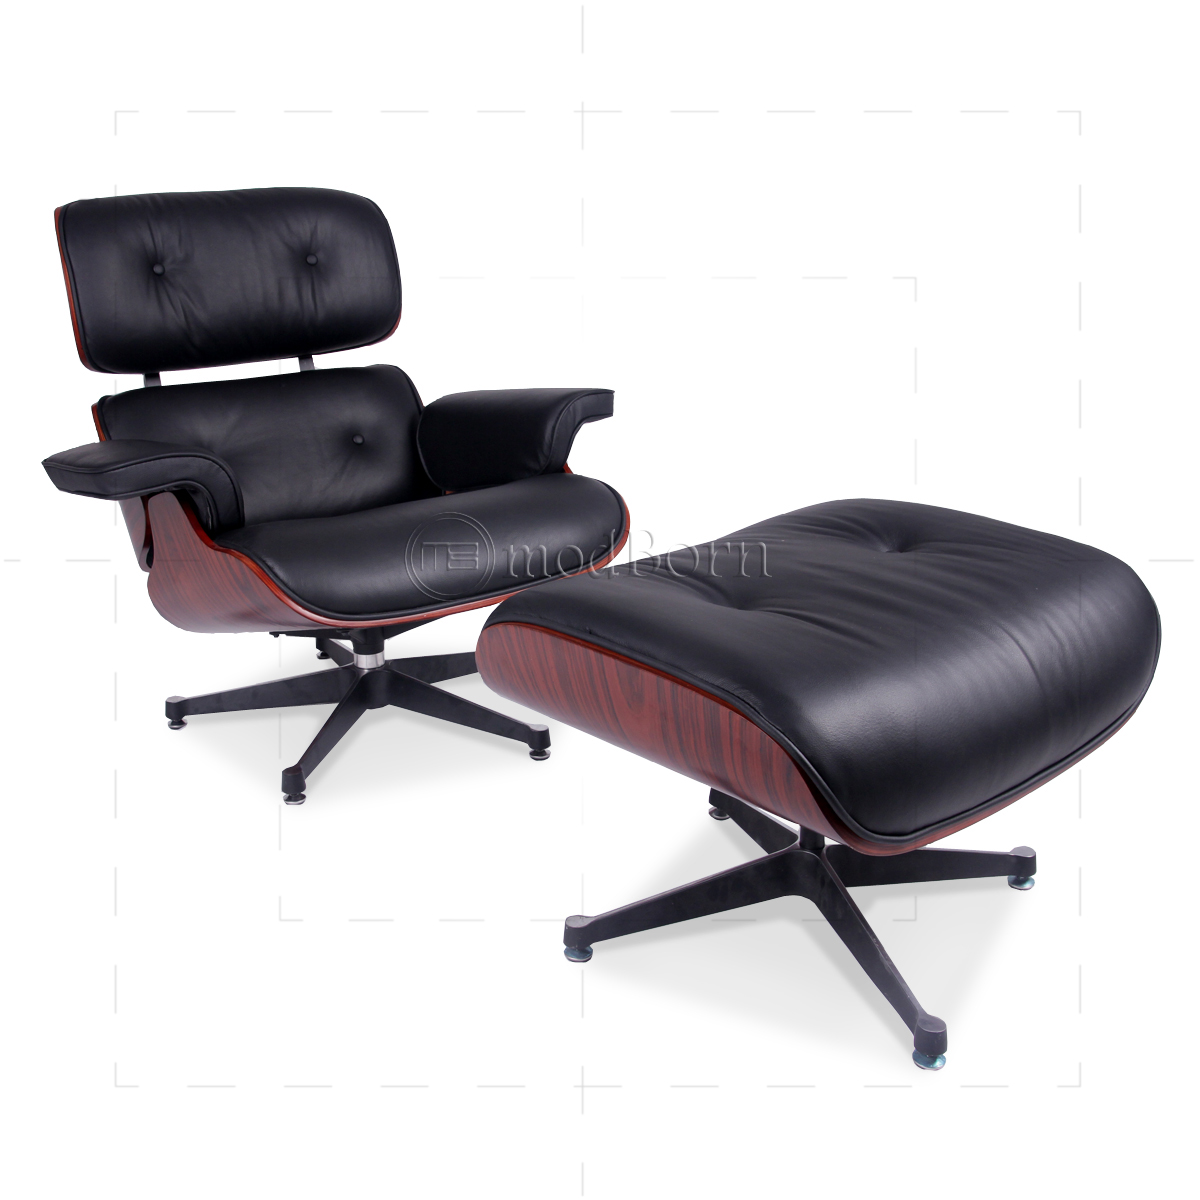 eames style lounge chair and ottoman black leather. Black Bedroom Furniture Sets. Home Design Ideas